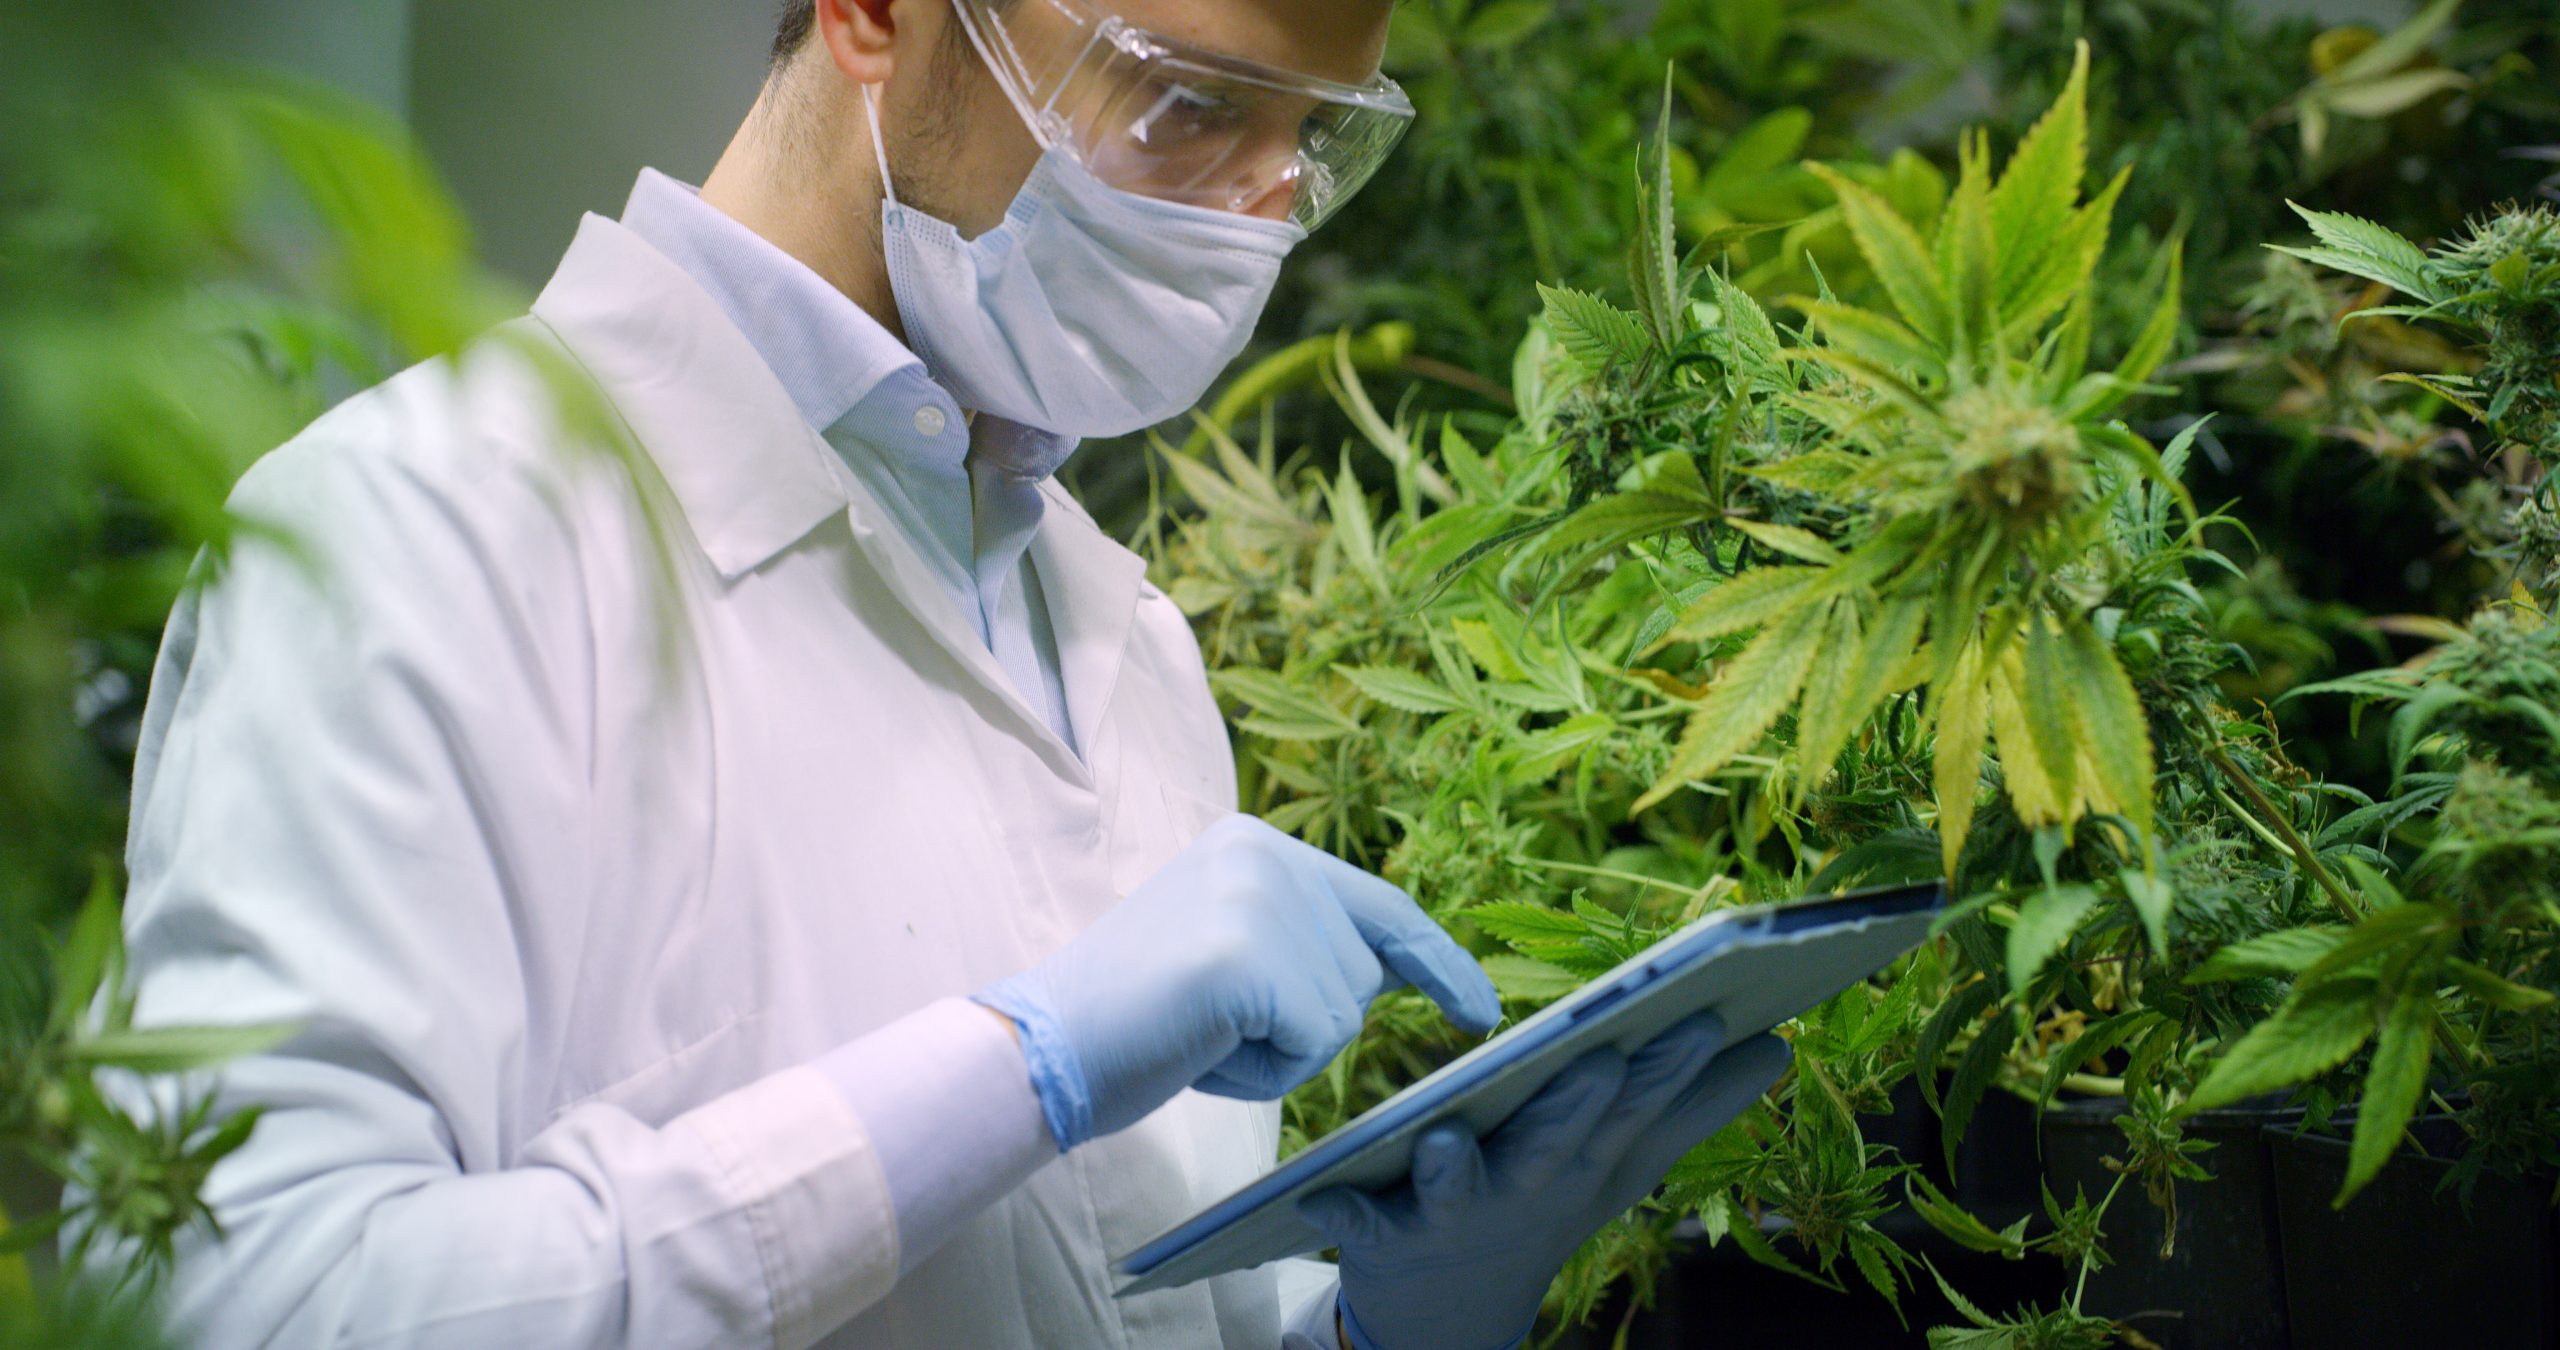 Review Of Research Shows More Work Needed On How Cannabis Impacts Health